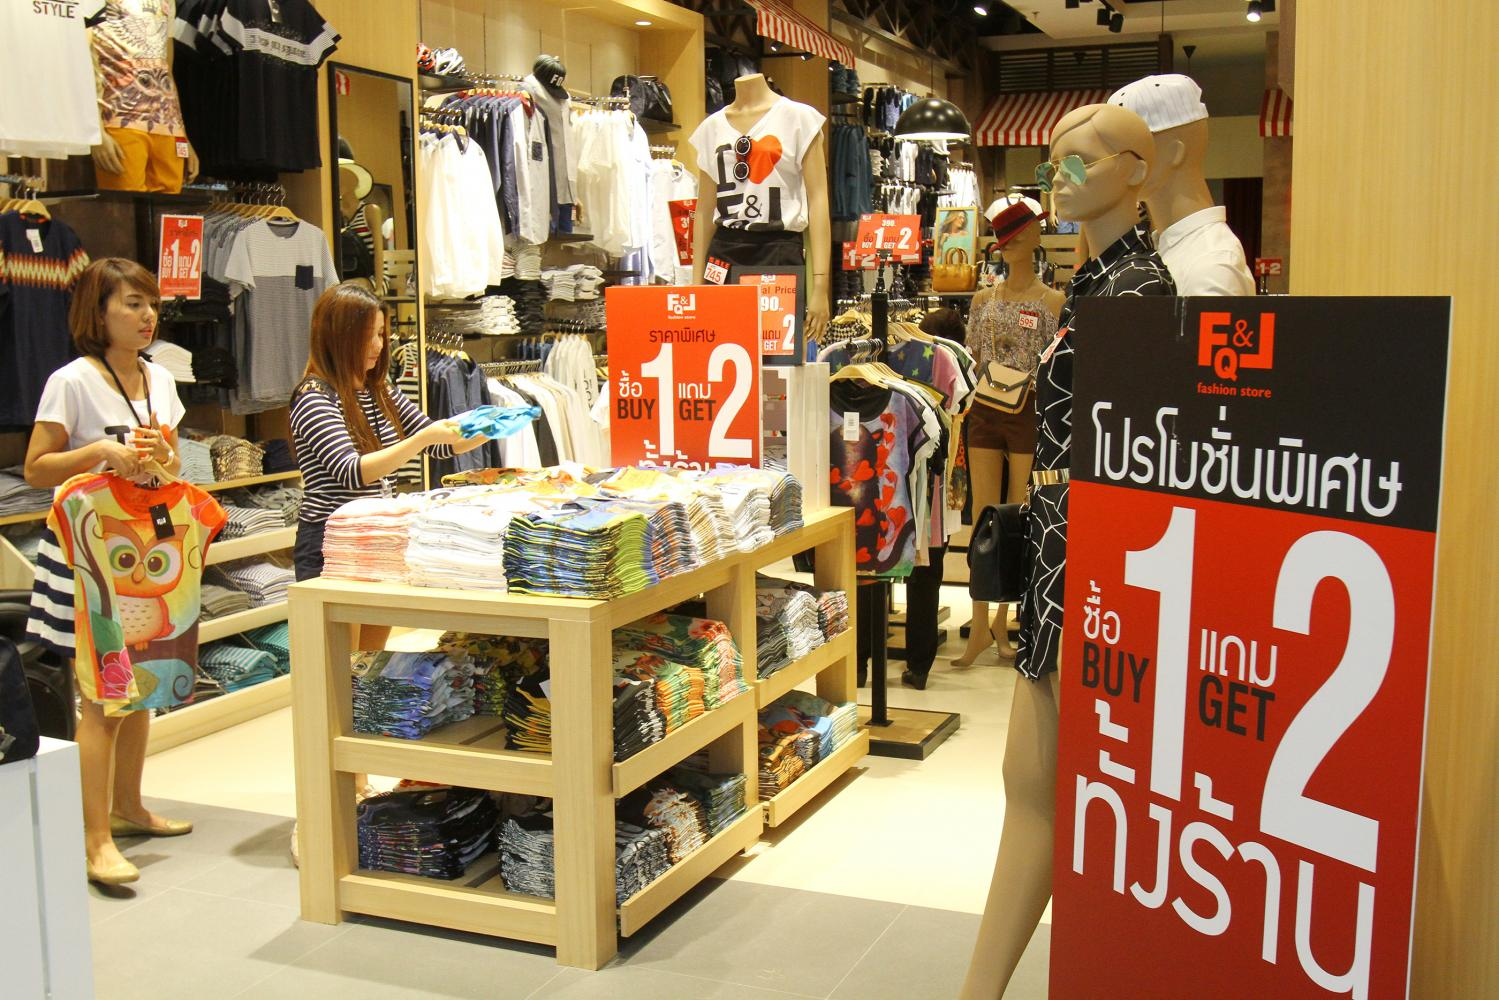 Retailers have promoted discount deals amid the slowing economy.